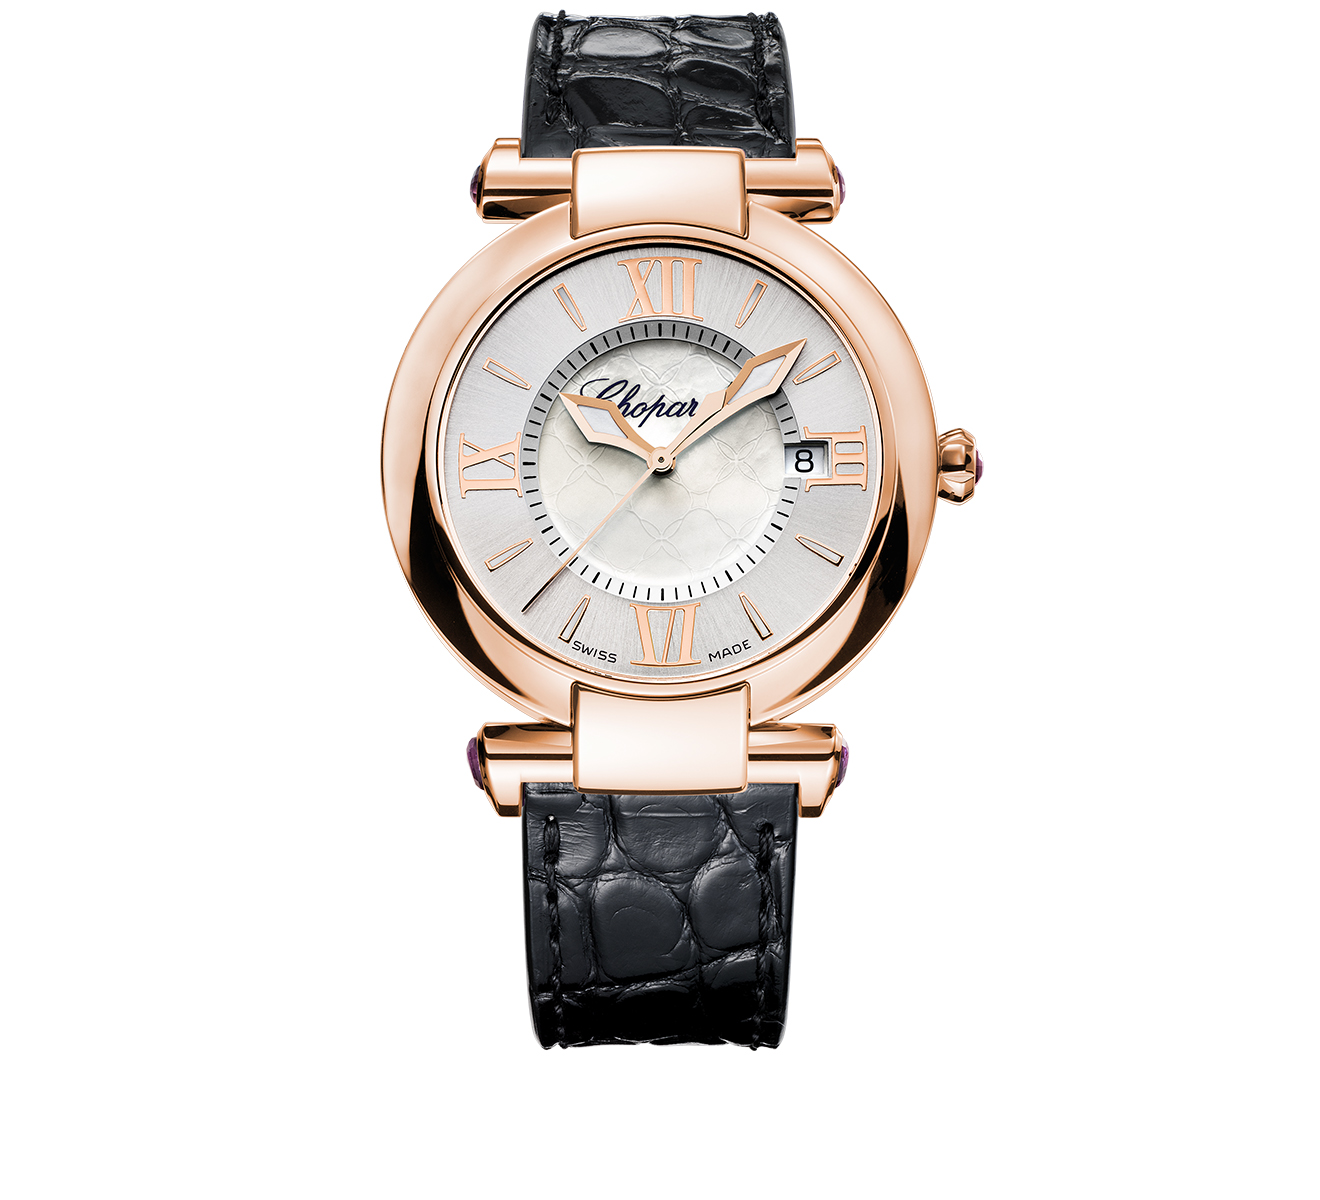 Часы Imperiale Chopard Imperiale 384221-5001 - фото 1 – Mercury